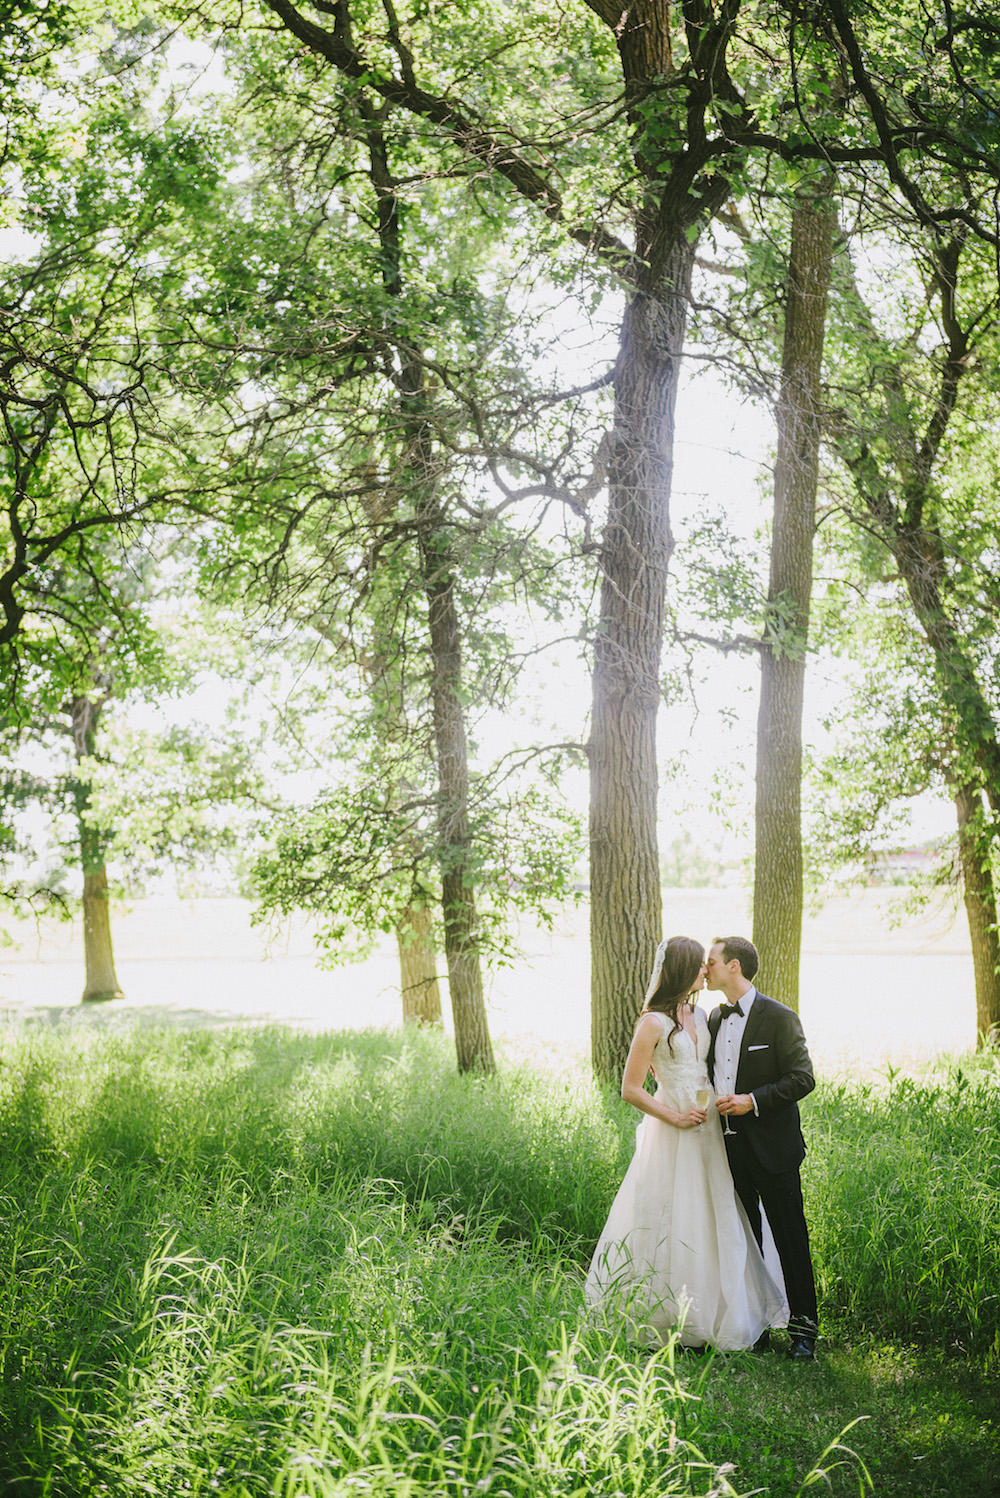 Wedding Photographer in Winnipeg - Winnipeg Wedding Ideas